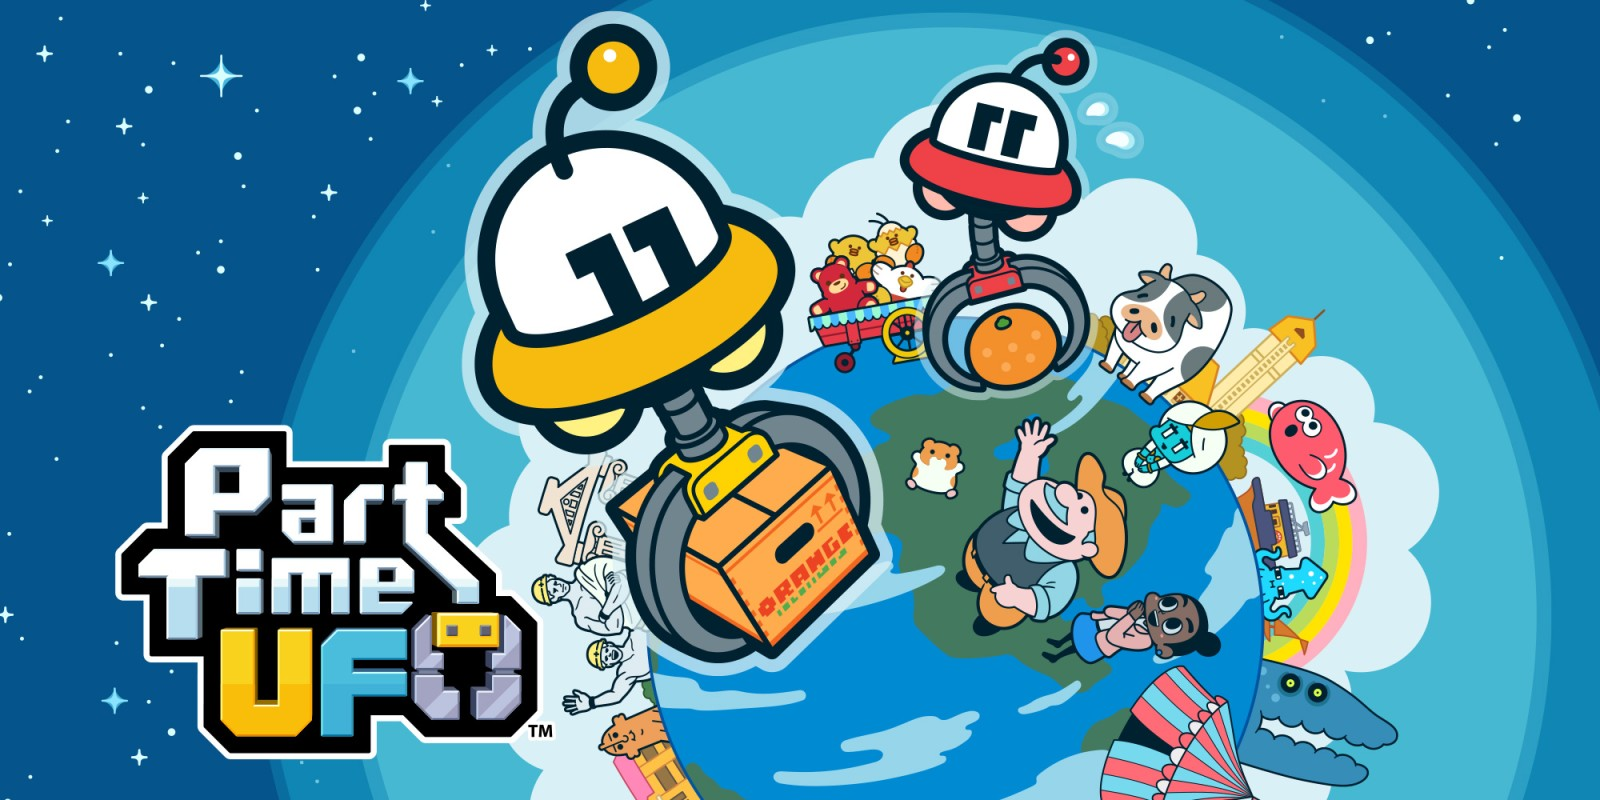 Part Time UFO: The cuddly puzzle fun in the test